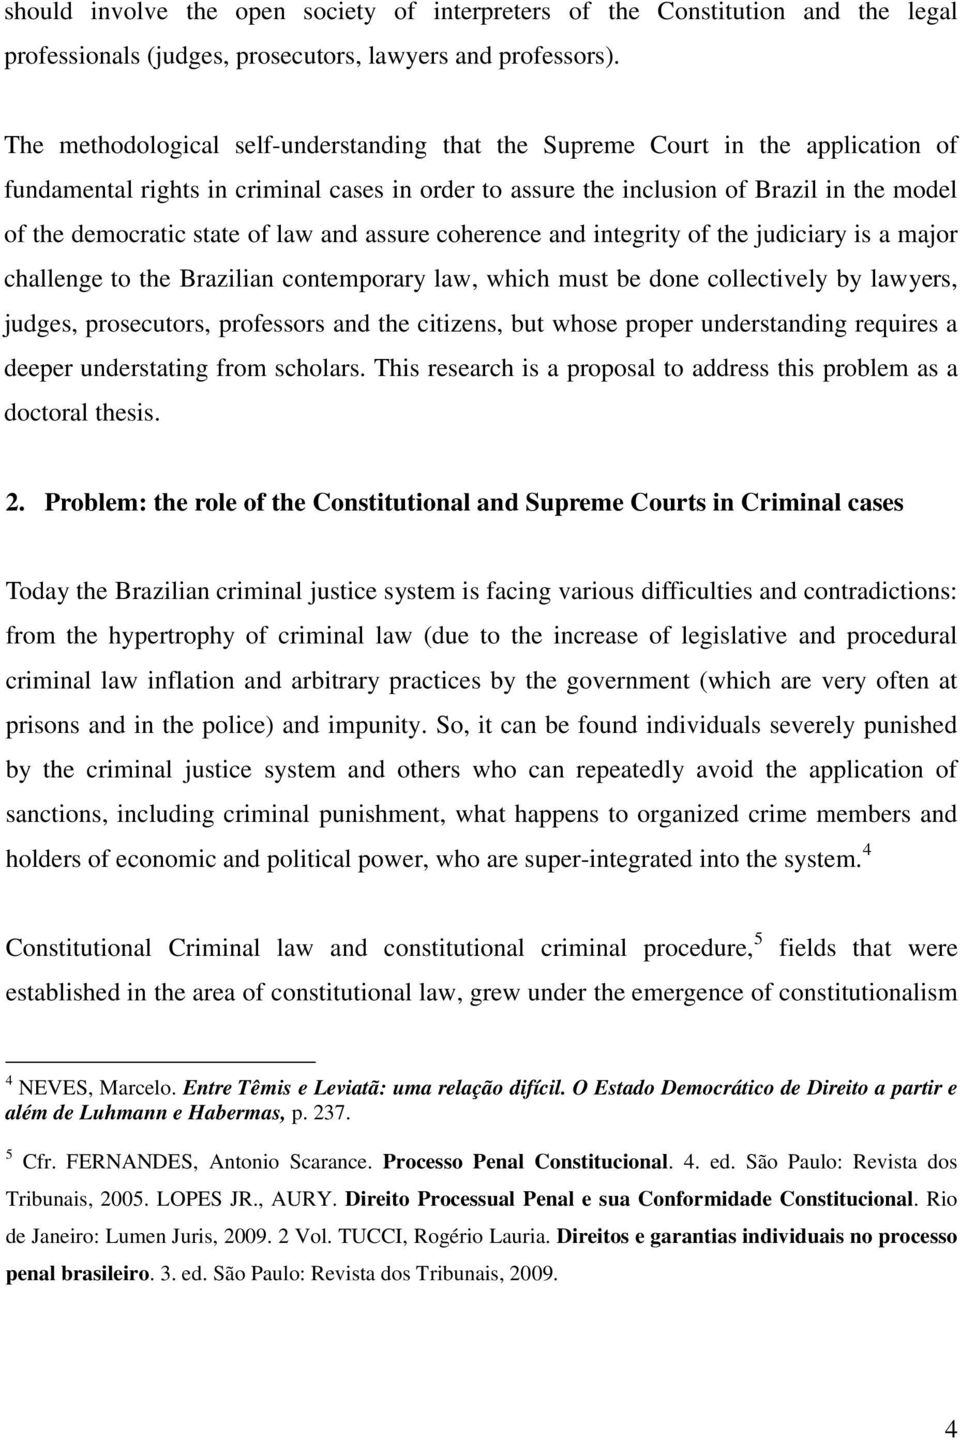 of law and assure coherence and integrity of the judiciary is a major challenge to the Brazilian contemporary law, which must be done collectively by lawyers, judges, prosecutors, professors and the